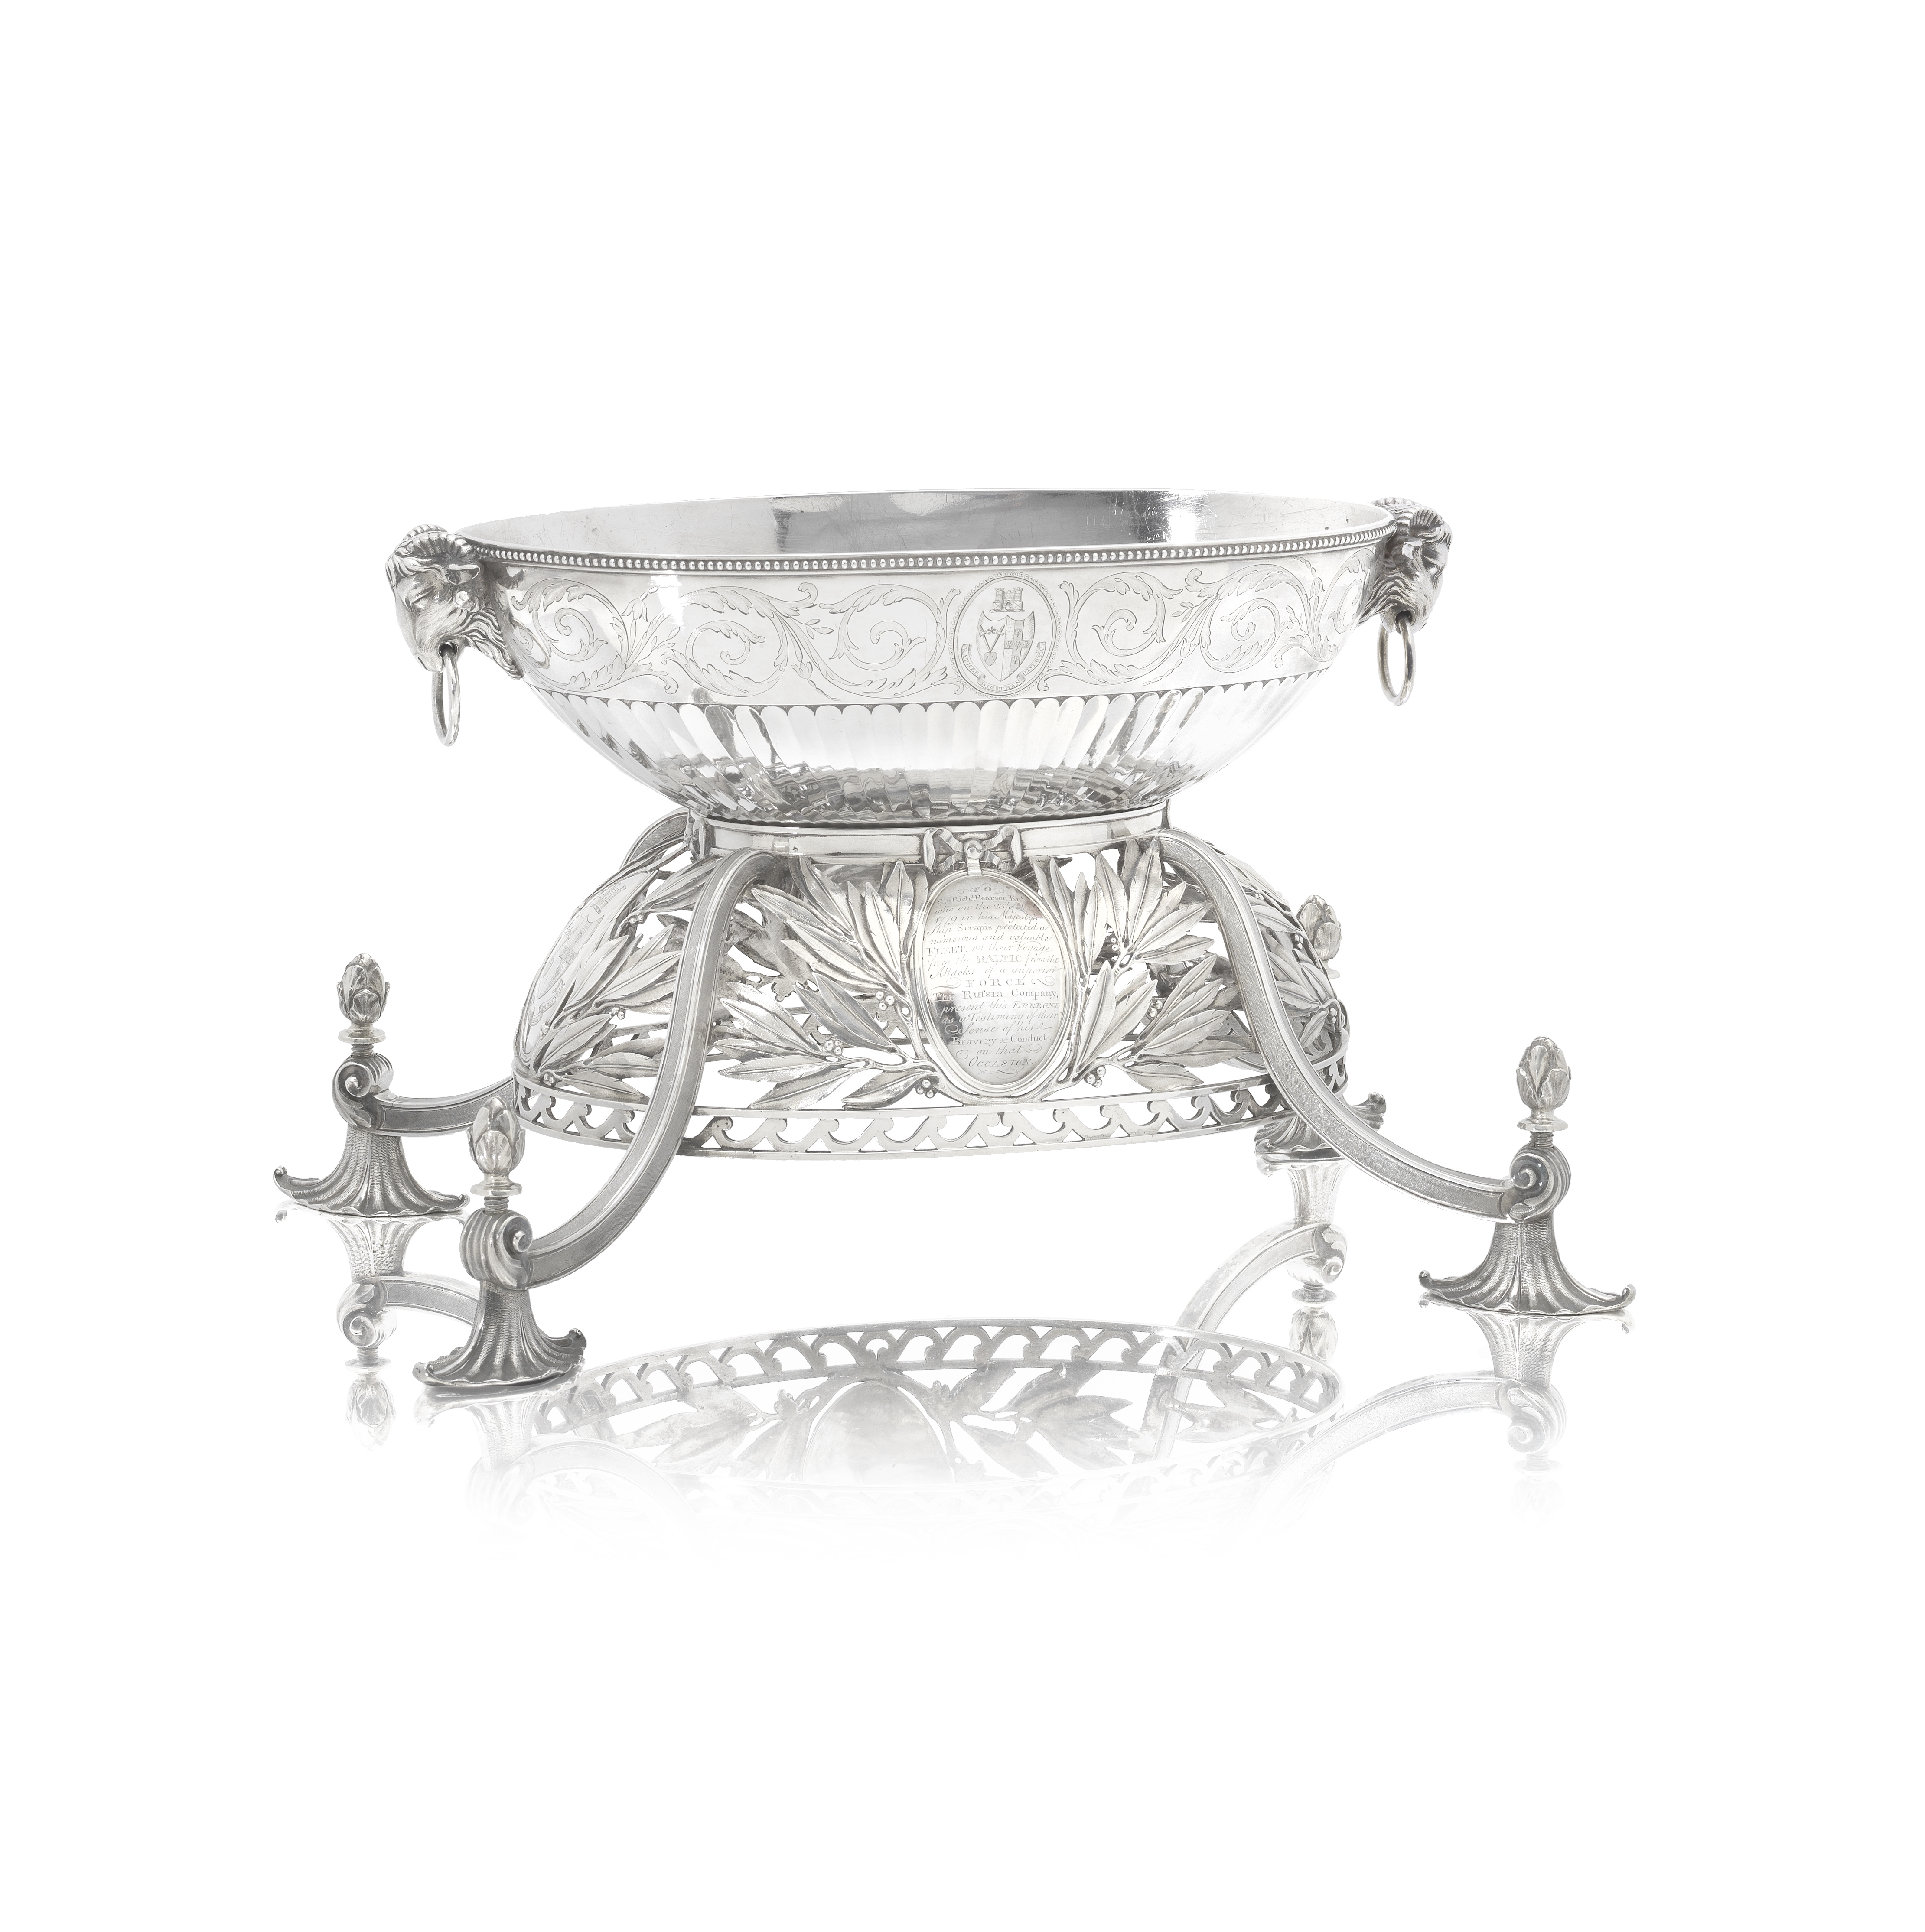 Lot 55 - A George III silver epergne / centrepiece: Naval and American Revolutionary War Interest John Wak...